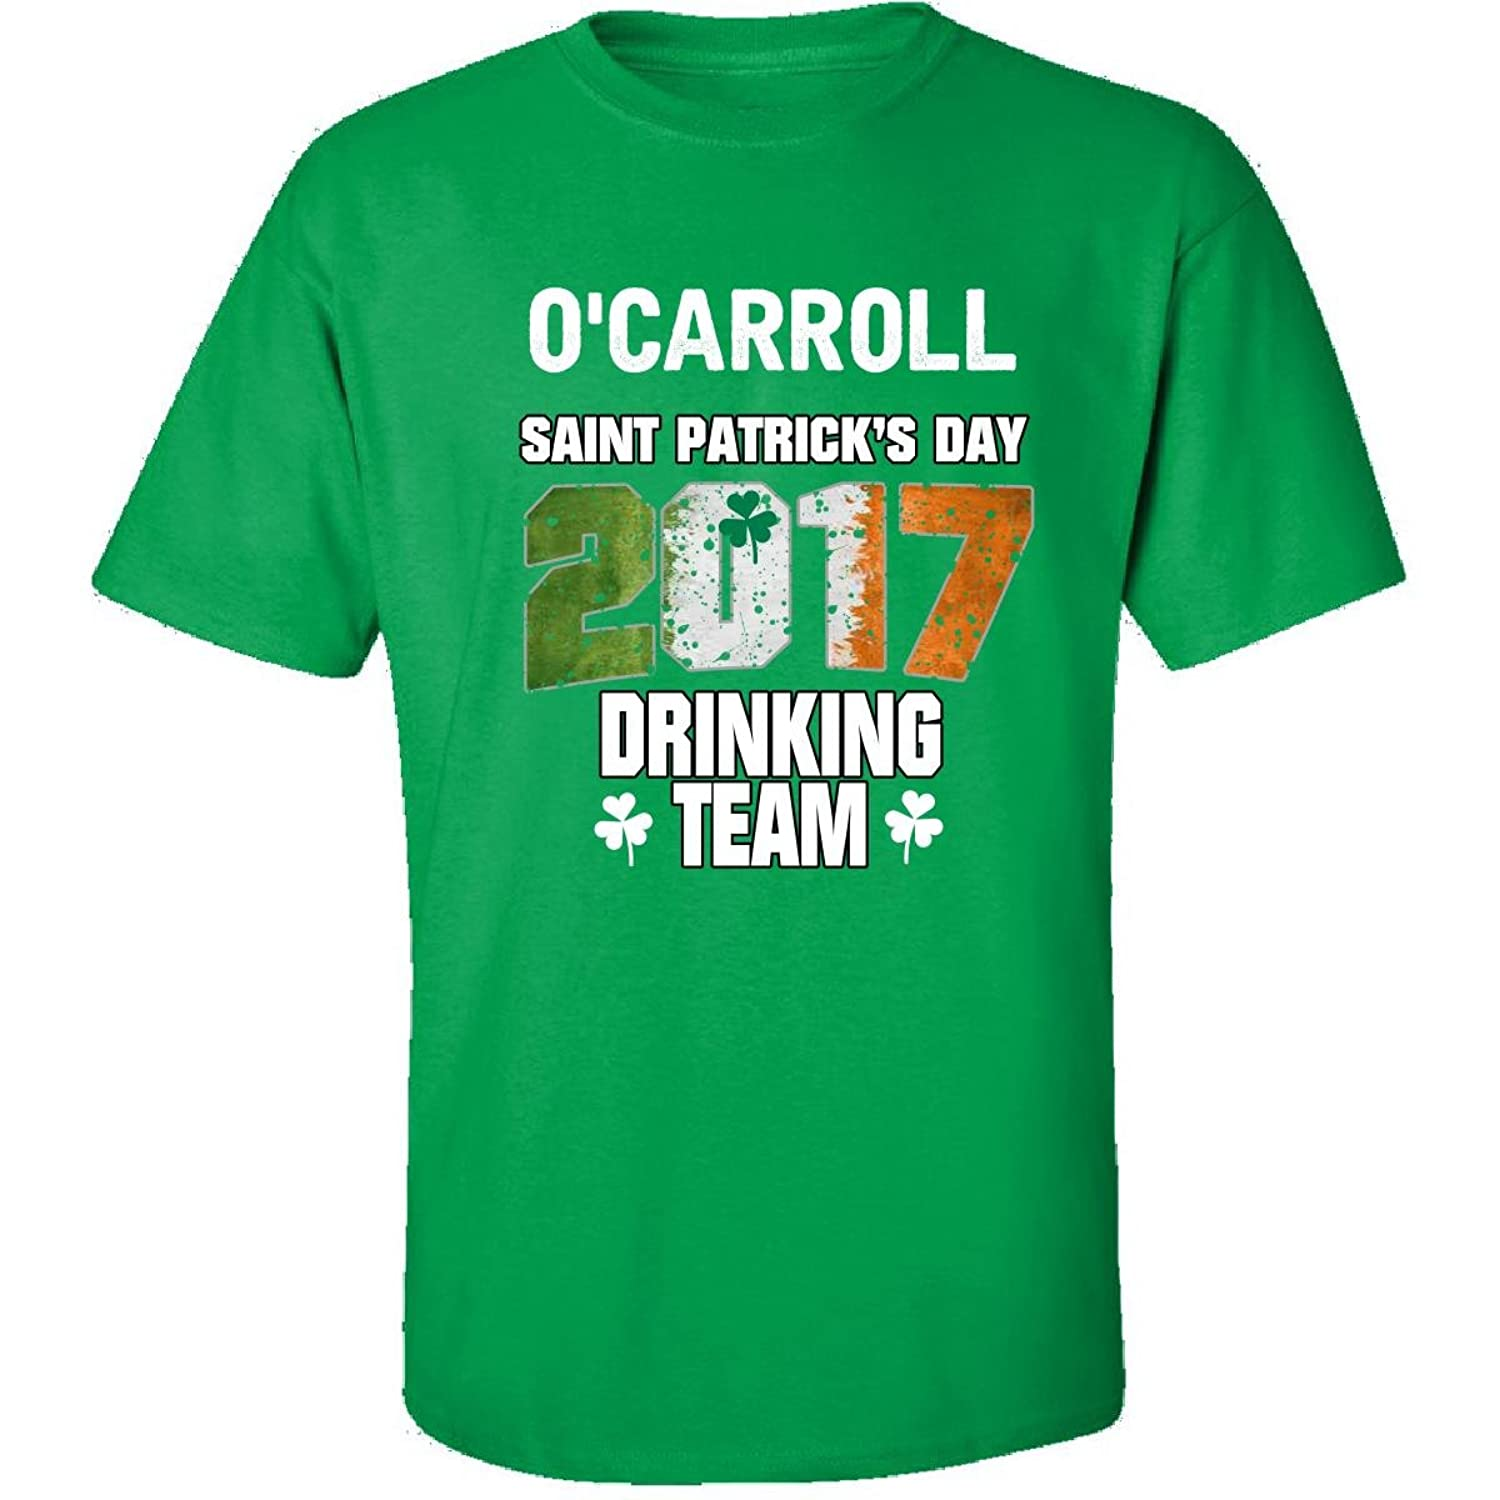 Ocarroll Irish St Patricks Day 2017 Drinking Team - Adult Shirt